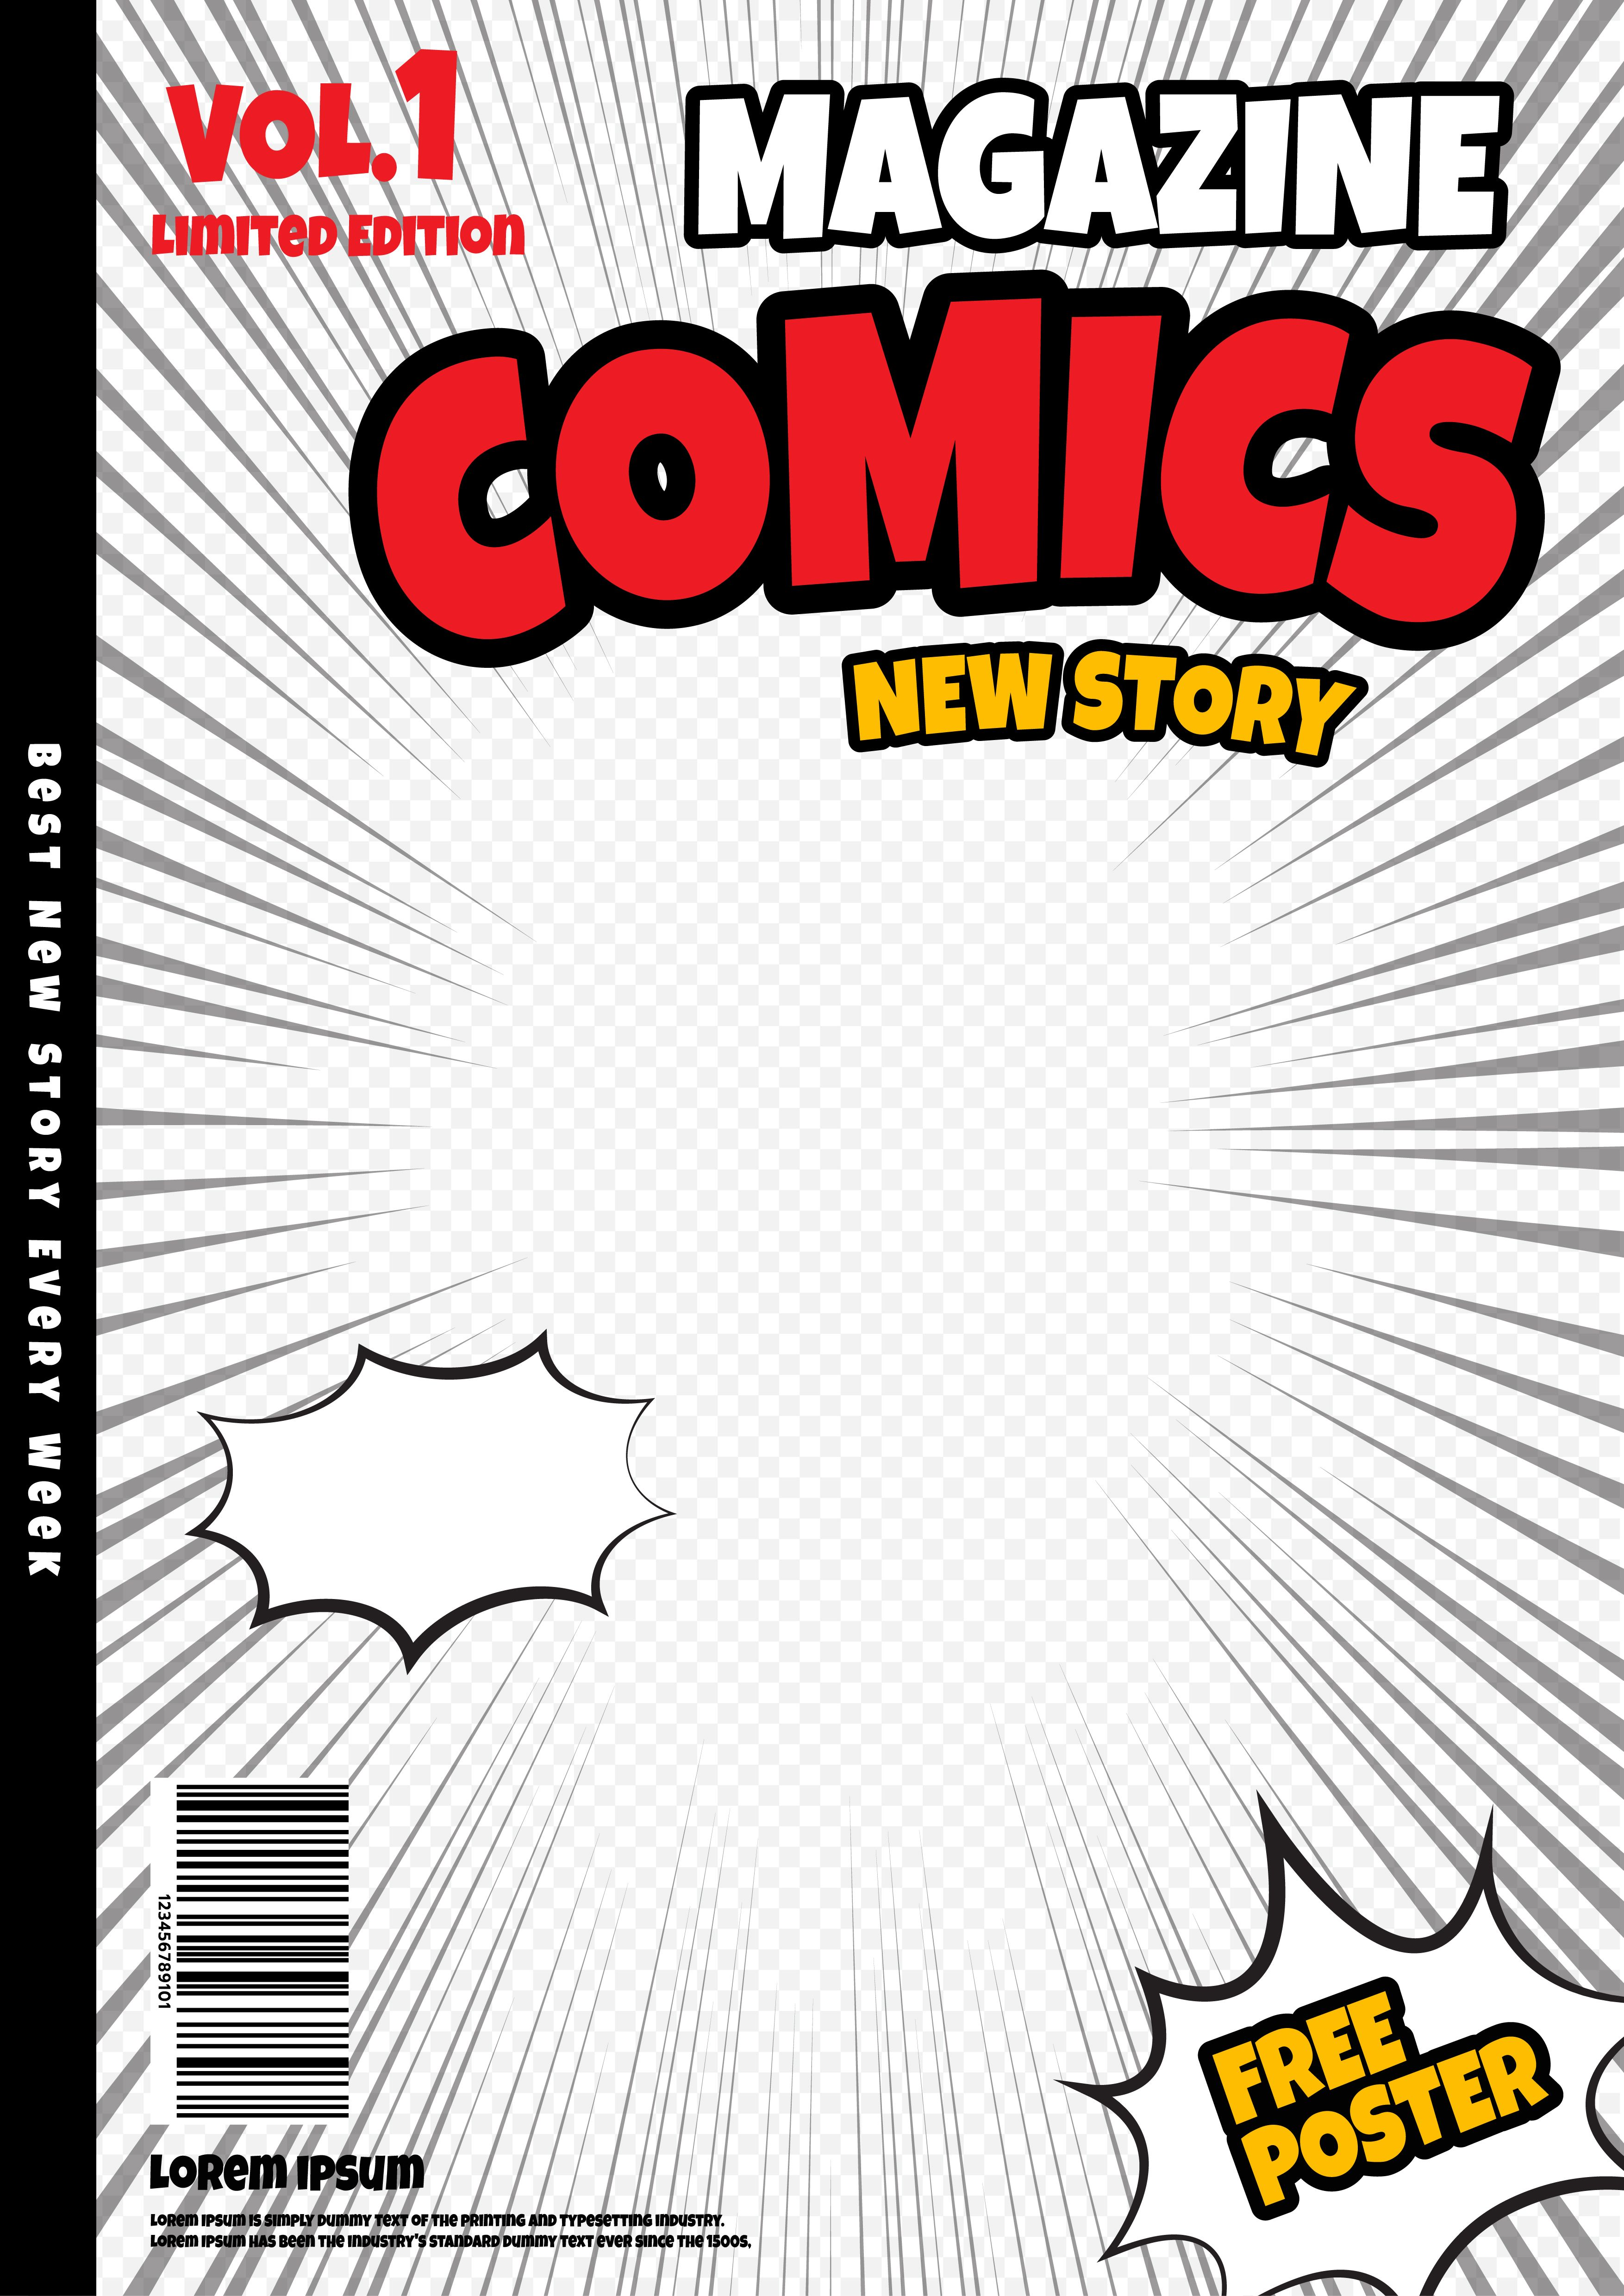 Photo Booth Idea Similar To Comic Page But Comic Cover Fill In White Seamless With Comic Cover G Book Cover Template Comic Book Pages Magazine Cover Template